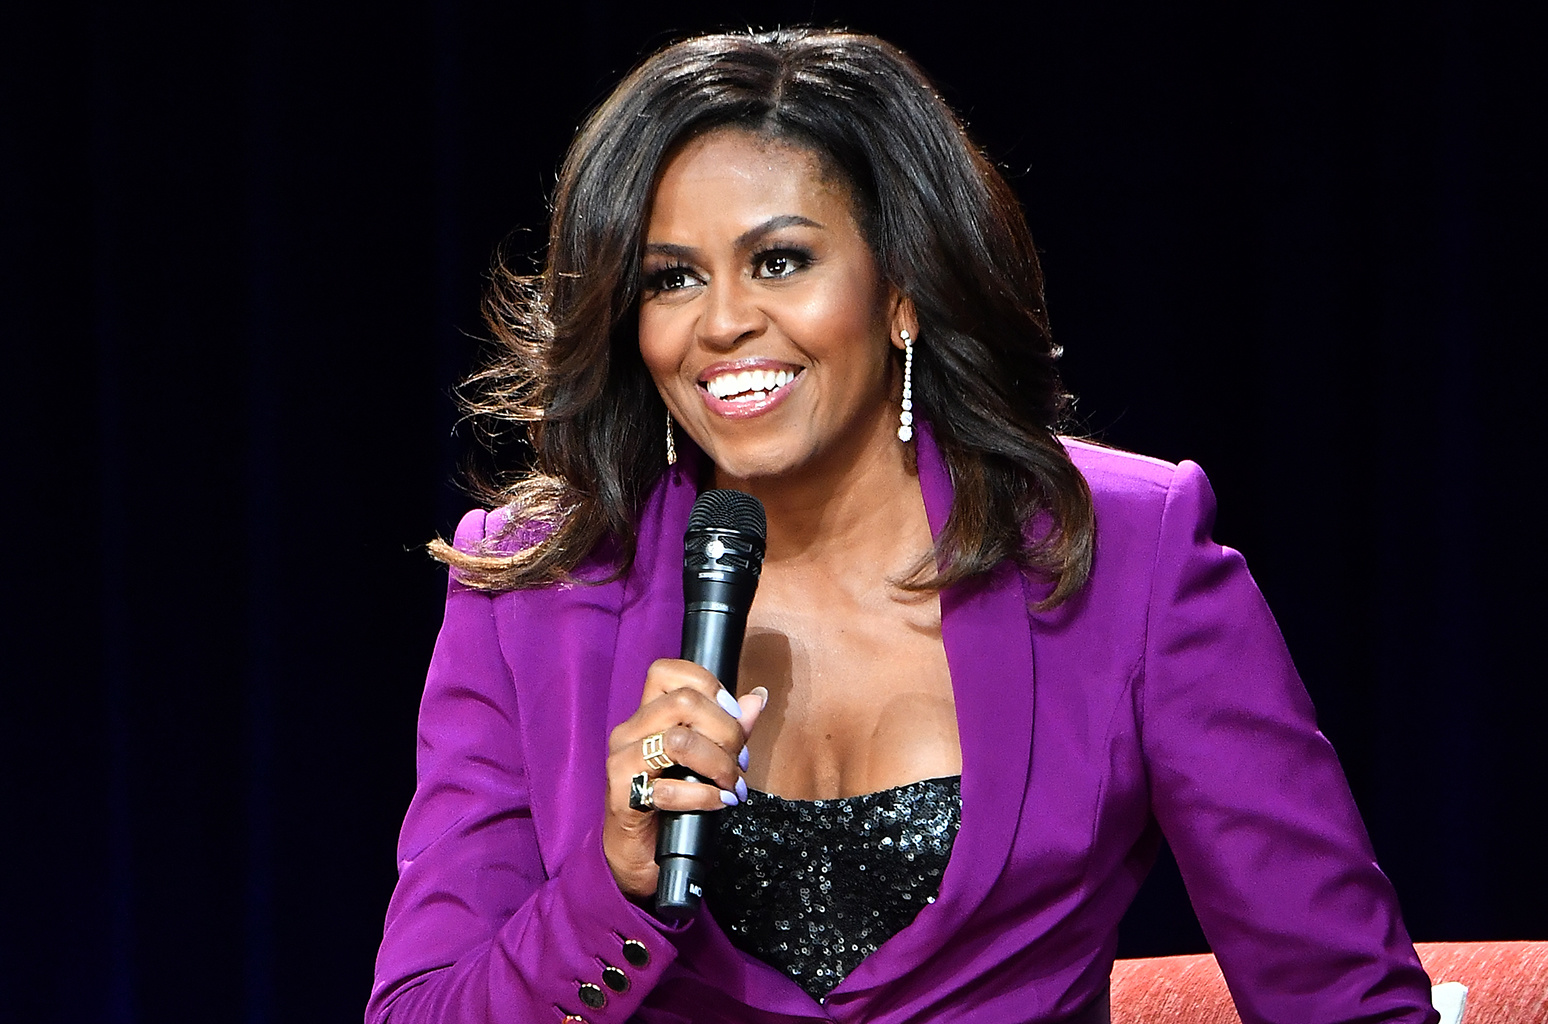 Michelle Obama Has A Word For Women Struggling With Self-Doubt